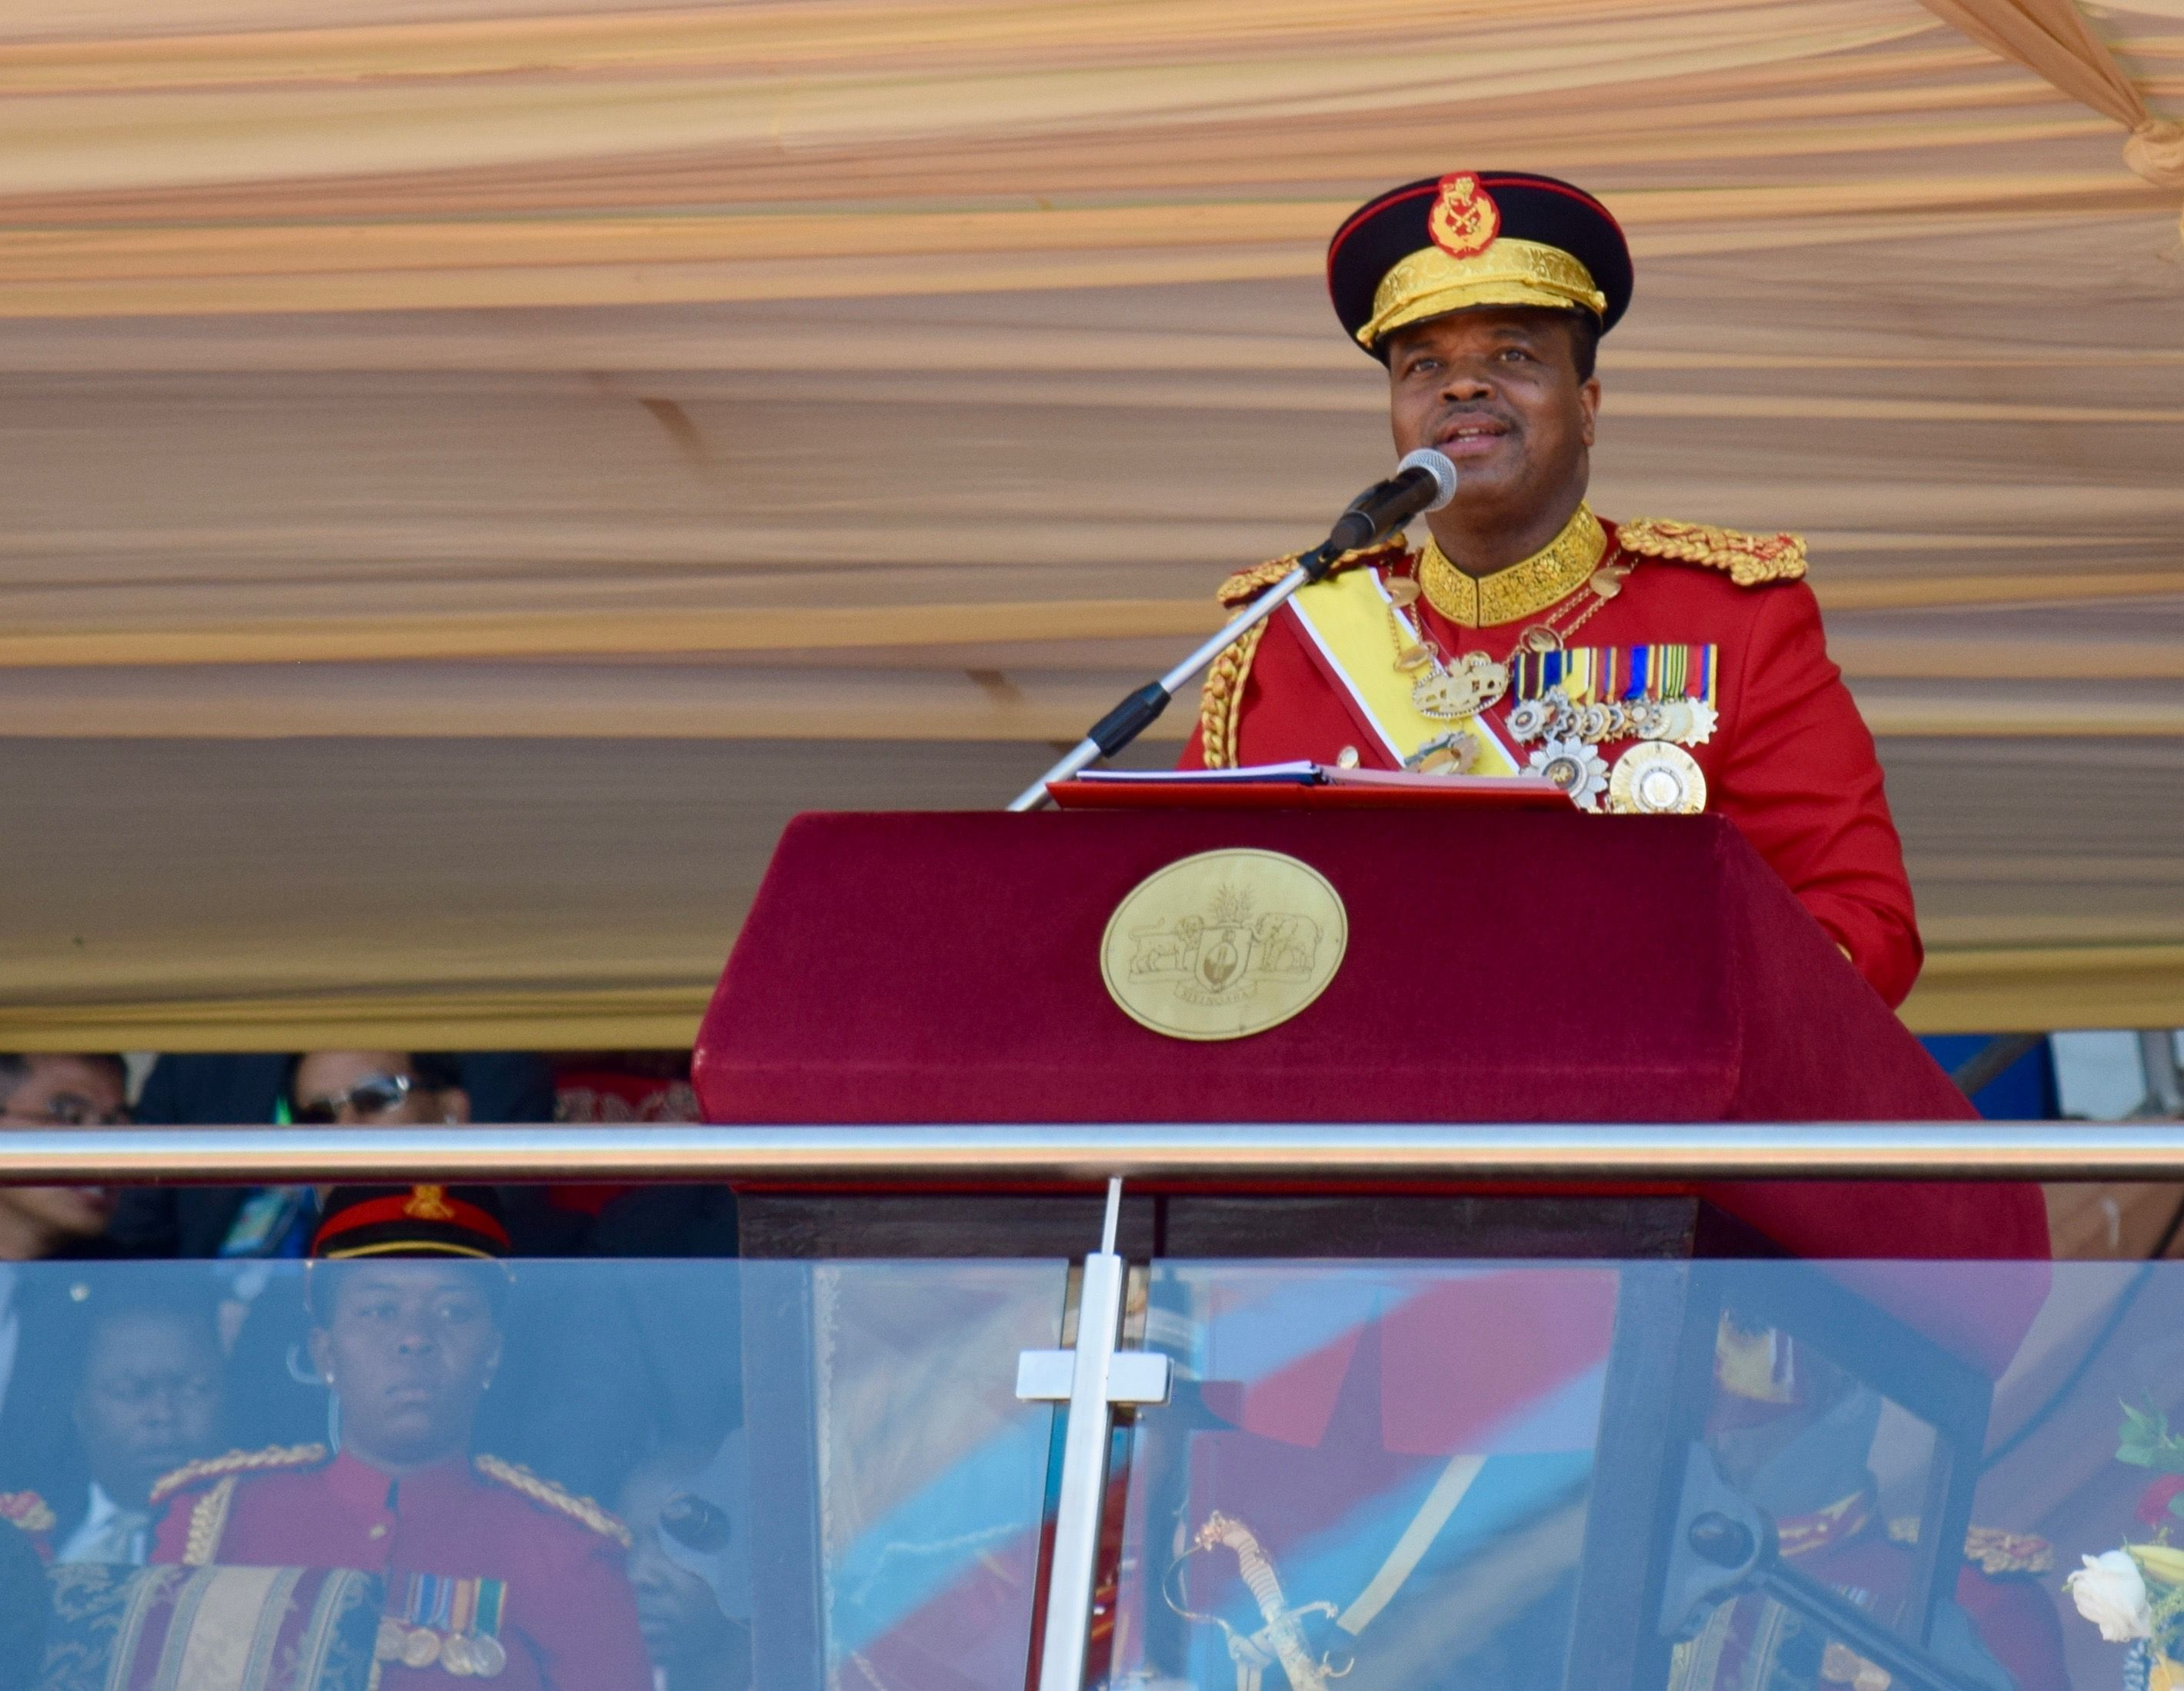 King Mswati III announcing that he will change Swaziland's name to the Kingdom of eSwatini